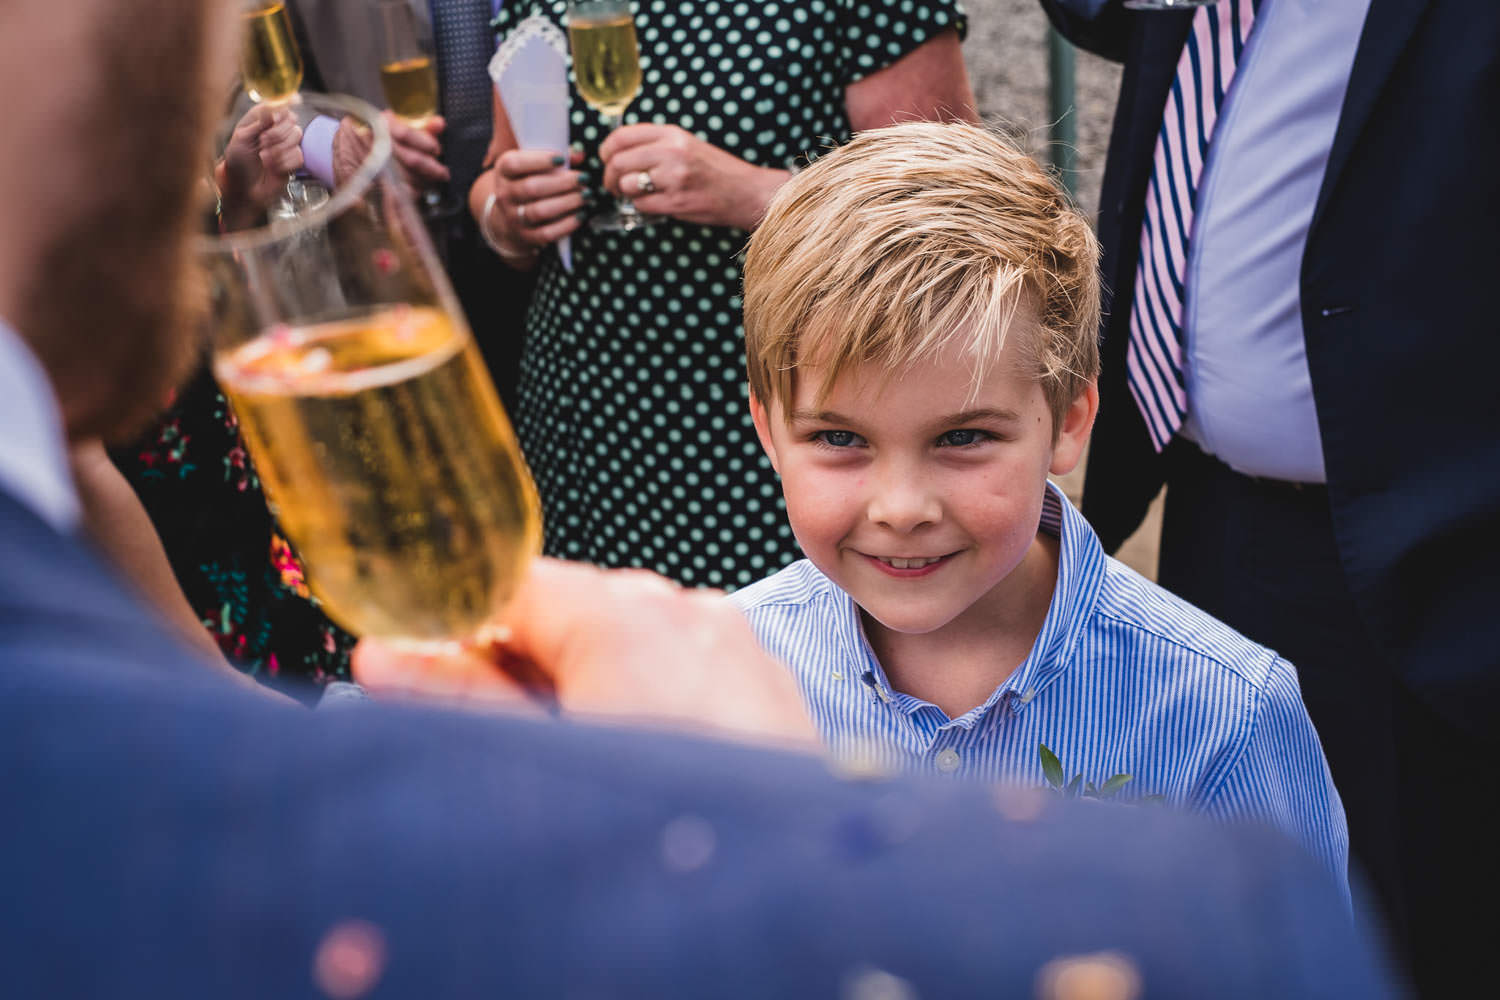 Confetti being thrown at wedding ceremony at The Punch Bowl Inn. Lake District